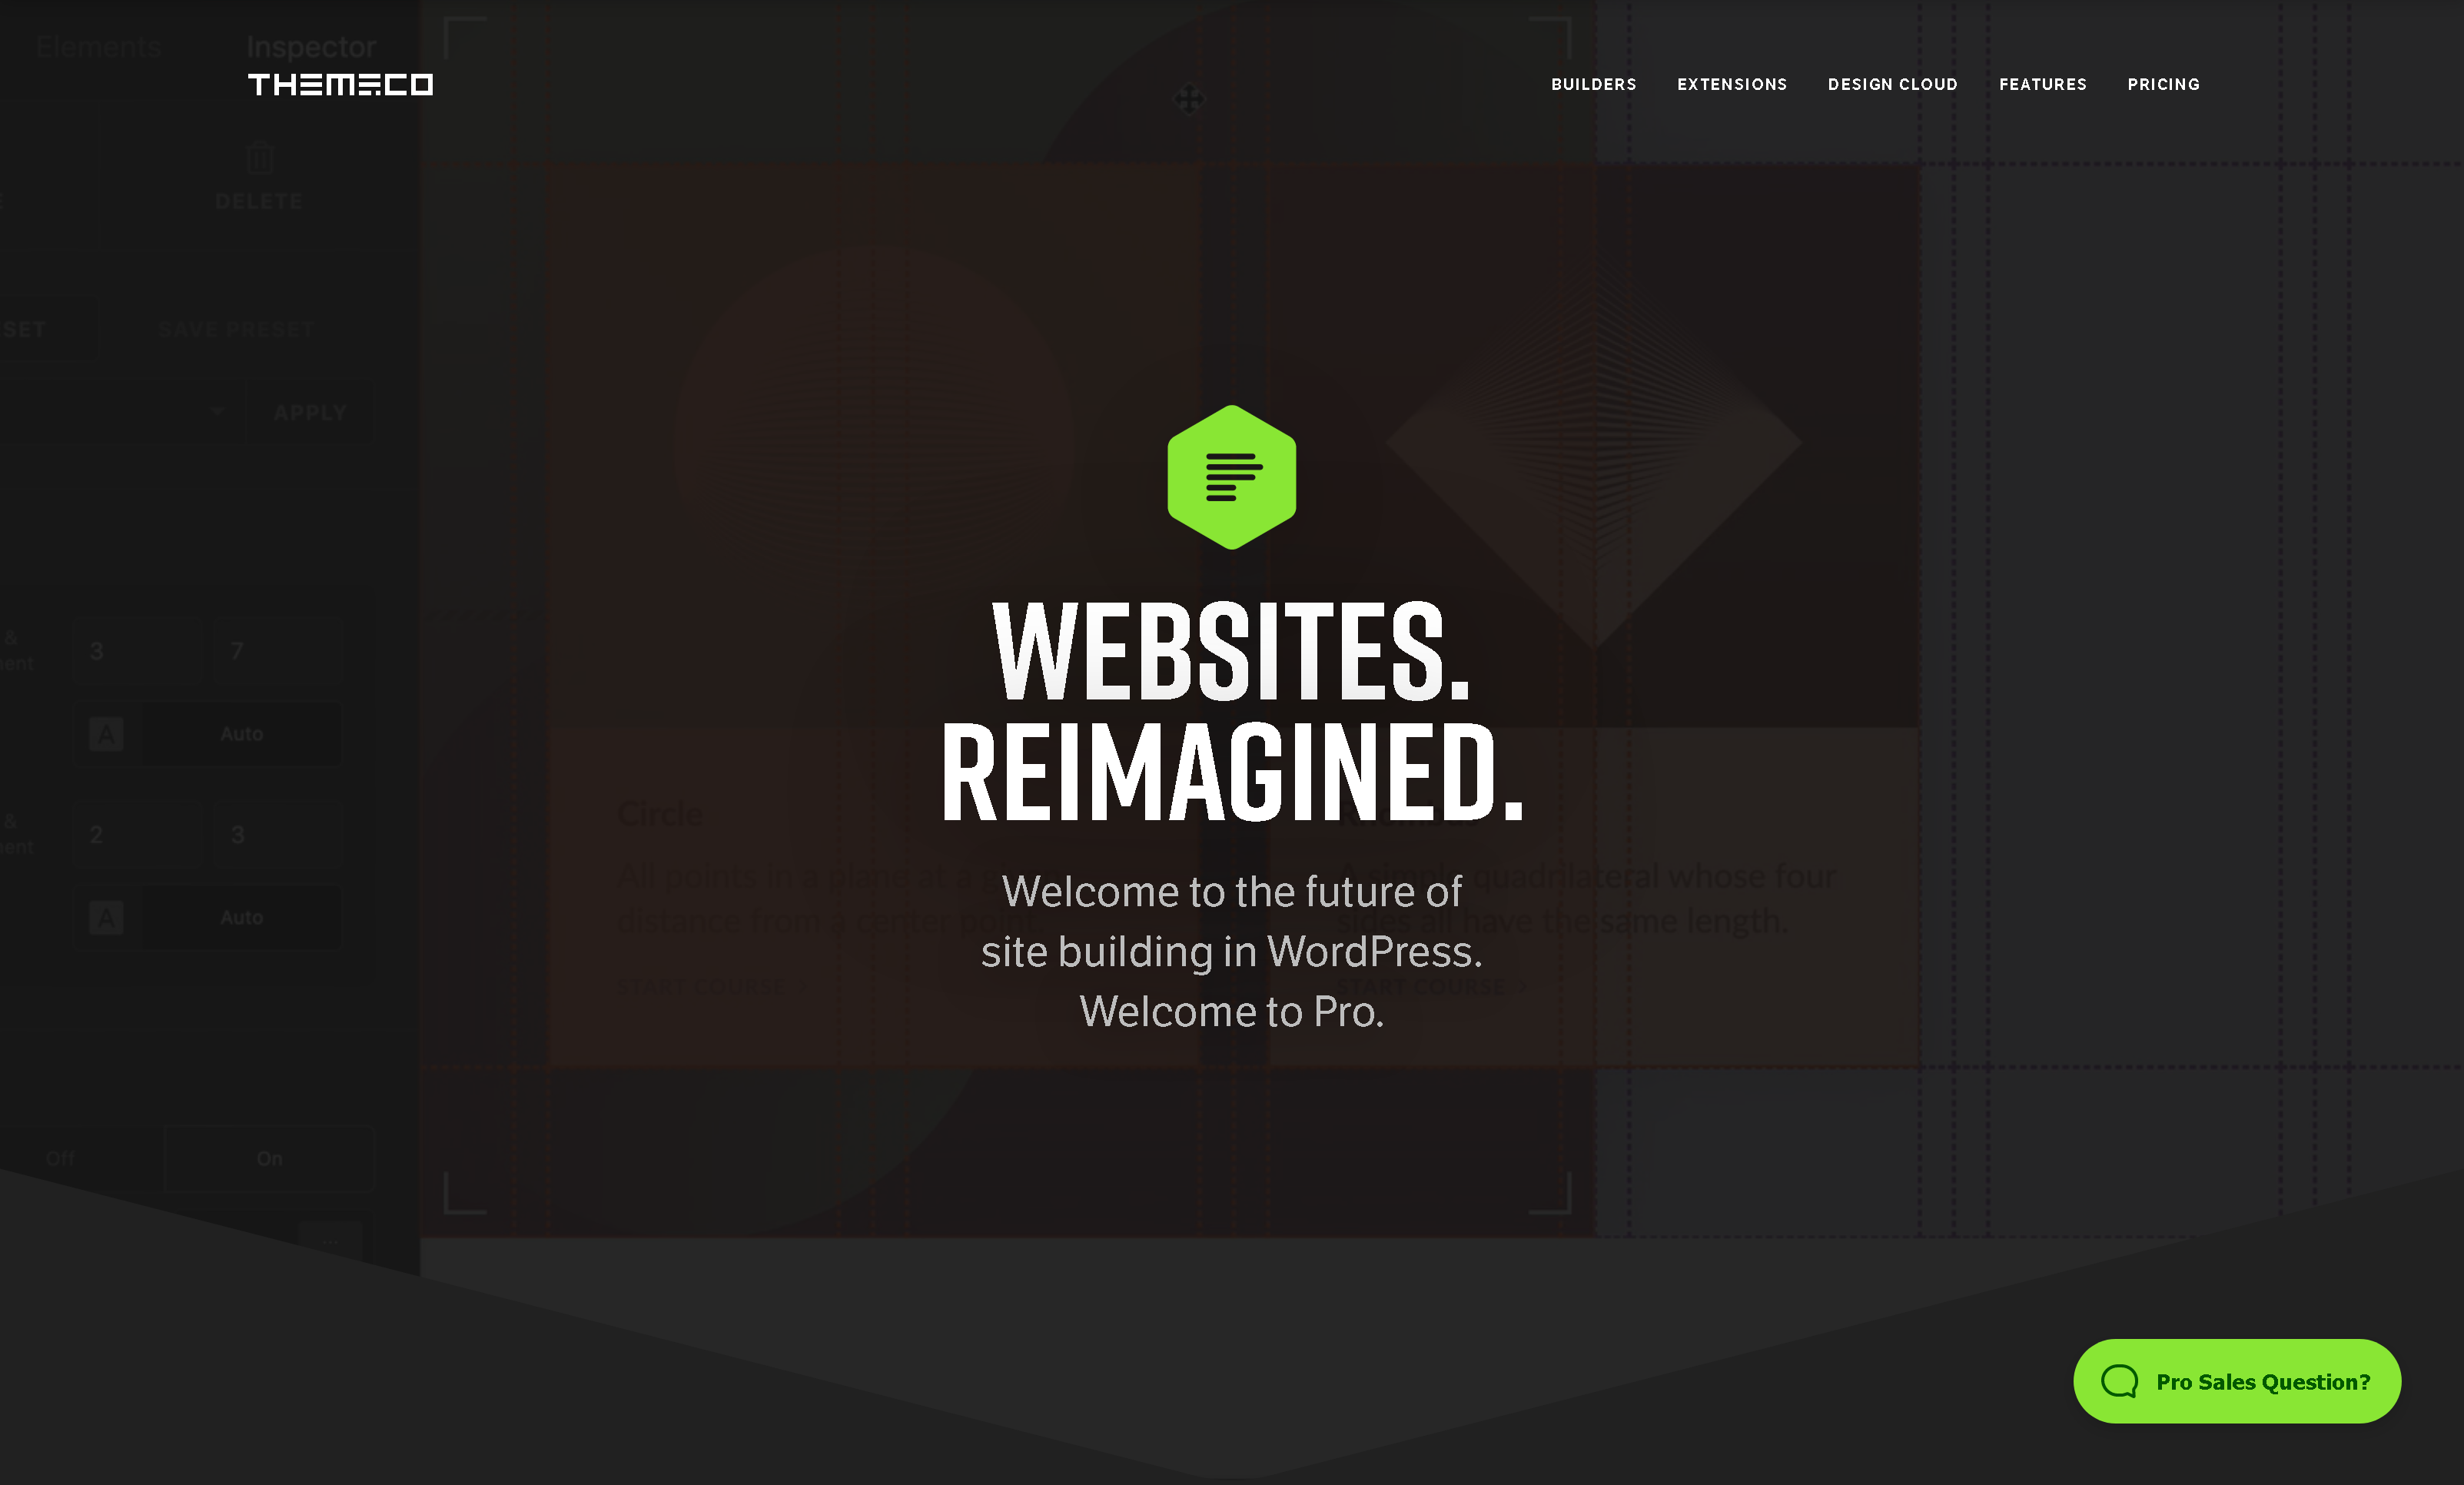 Themeco Pro 3.2.3 – The Most Advanced Website Builder for WordPress